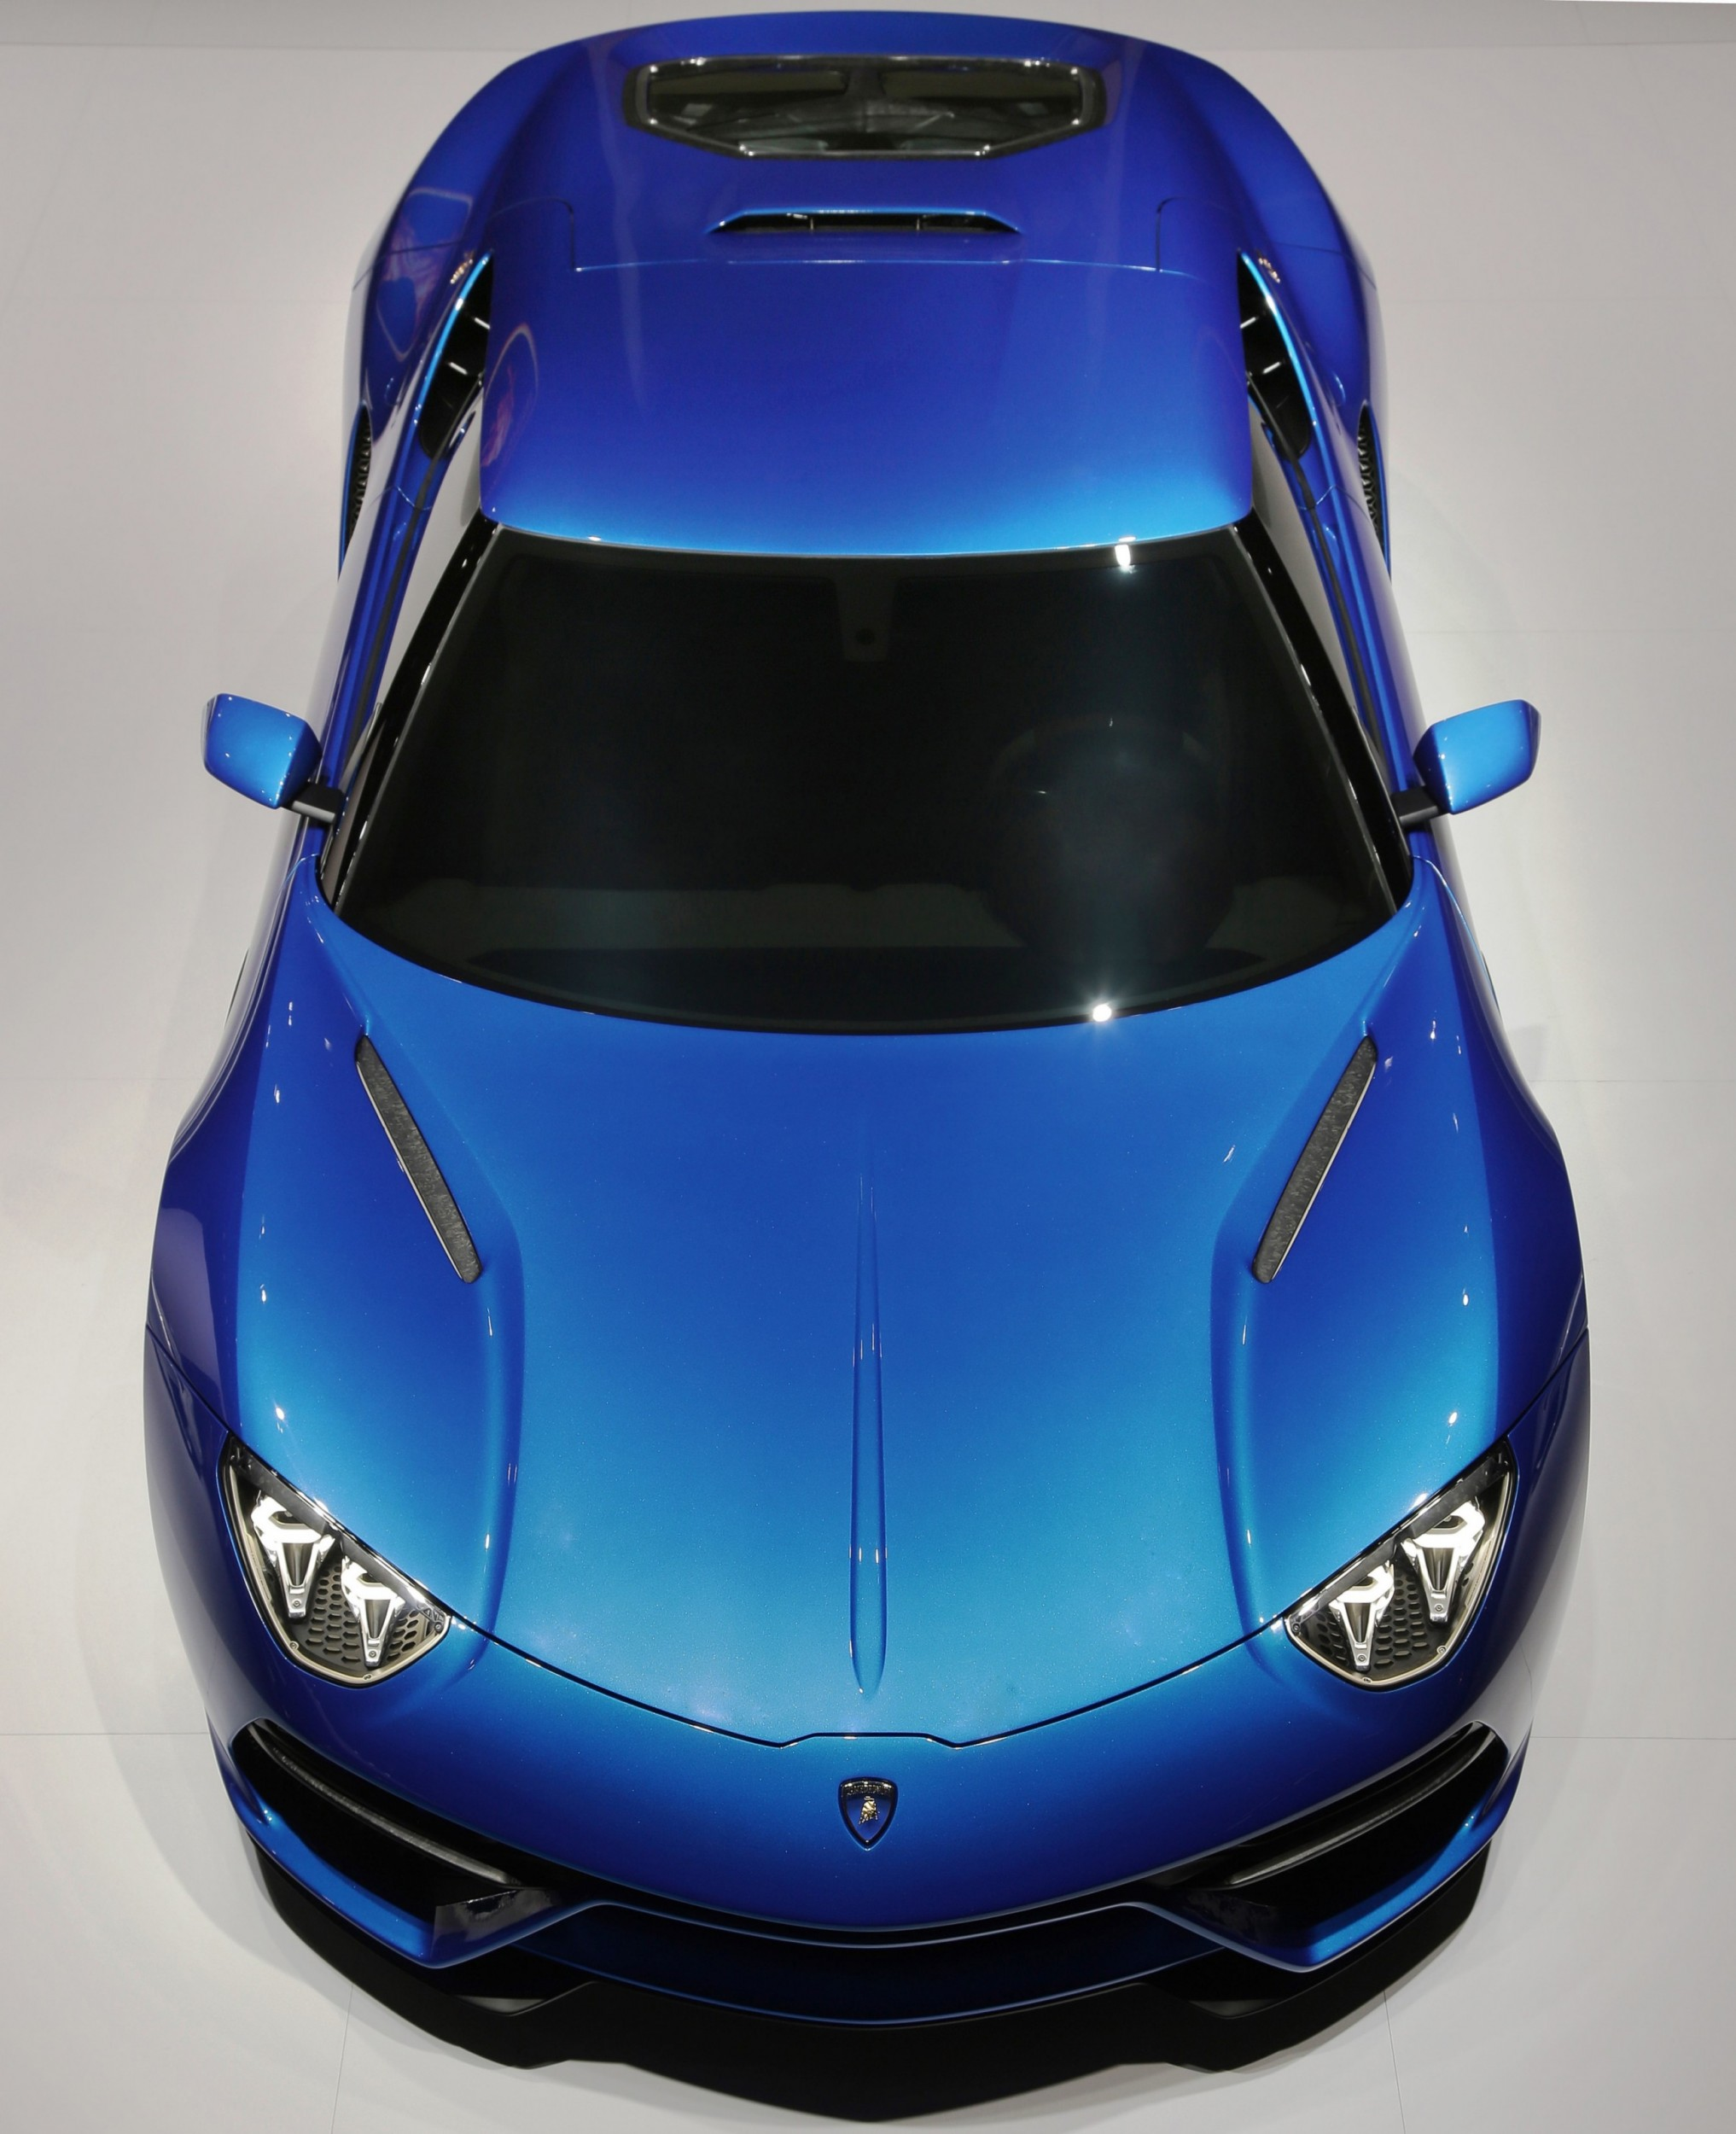 Asterion Returns! Lamborghini LPI 910-4 Asterion Is Back